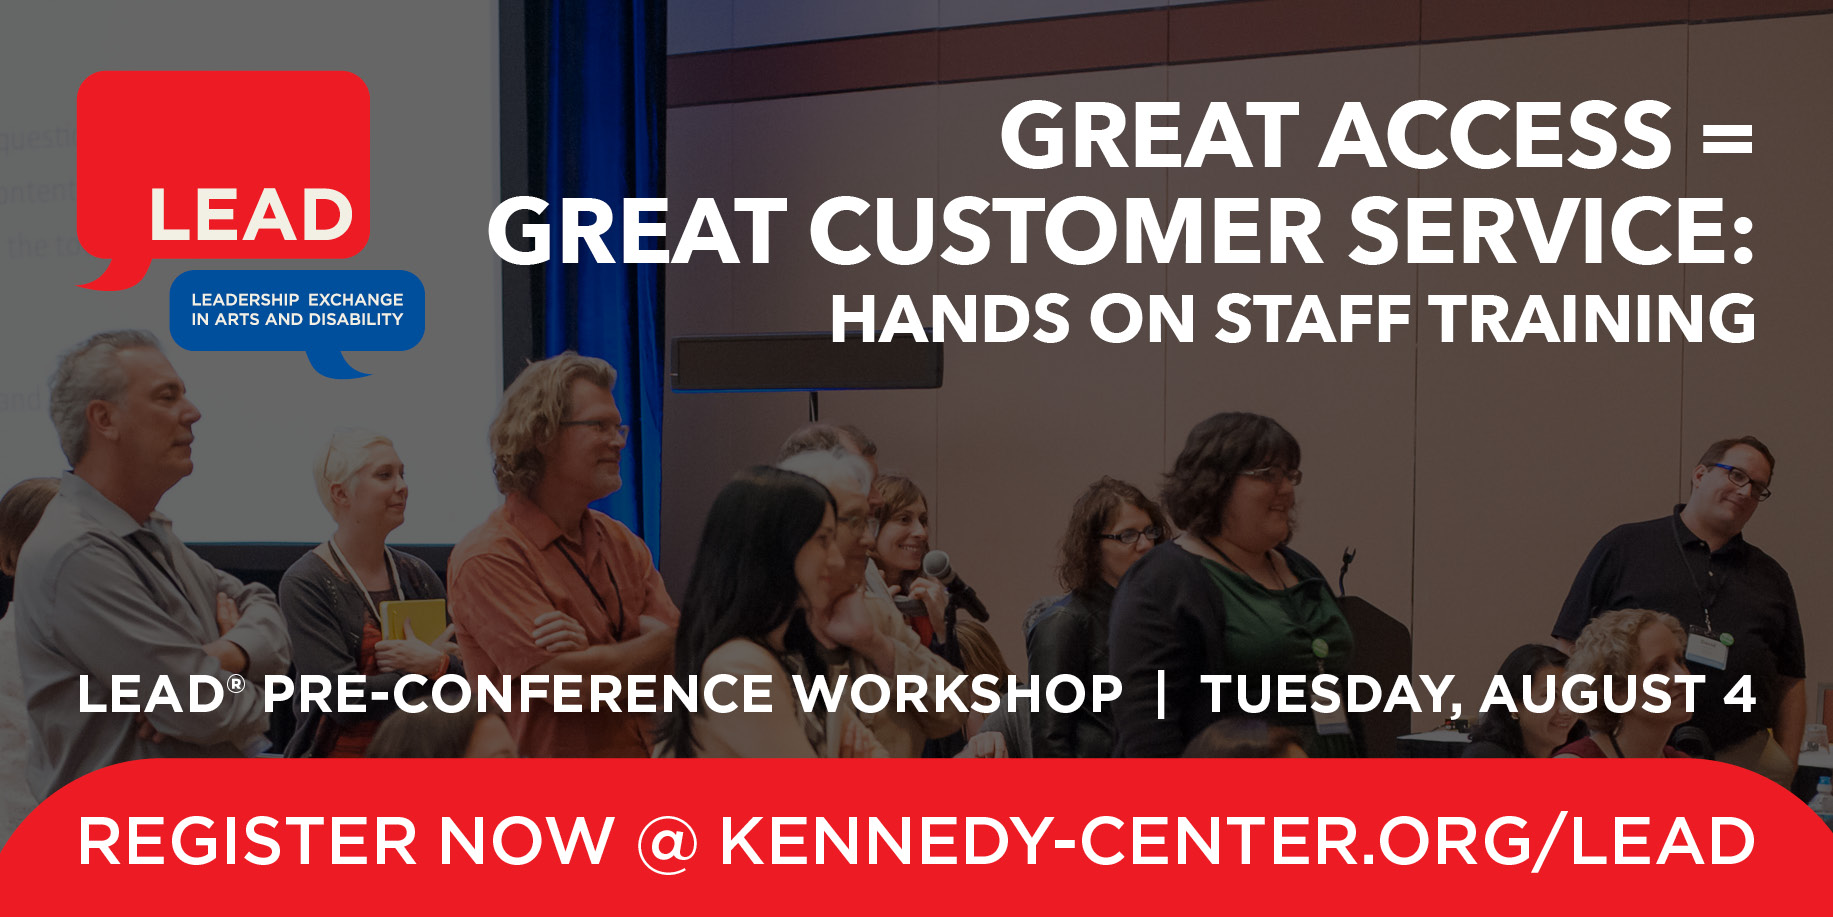 Pre-Conference Graphic: Great Access = Great Customer Service